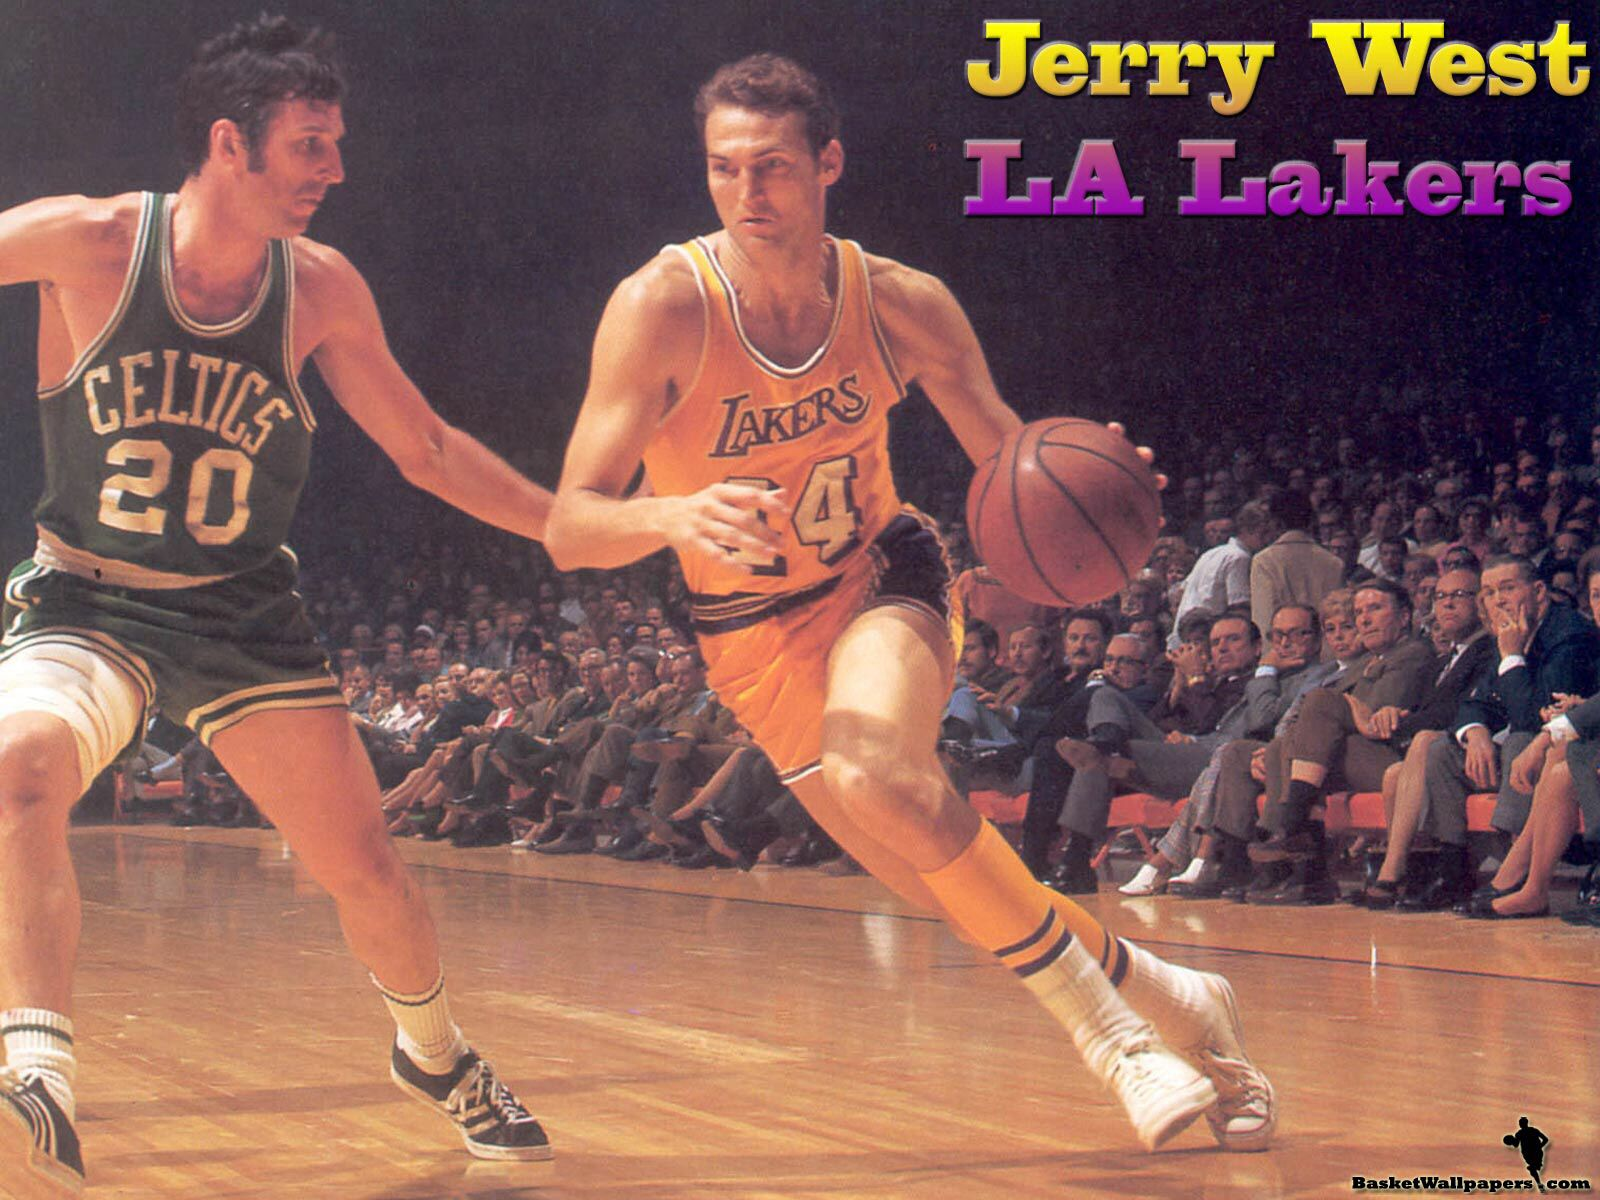 Jerry West Jerry west, Basketball is life, Basketball